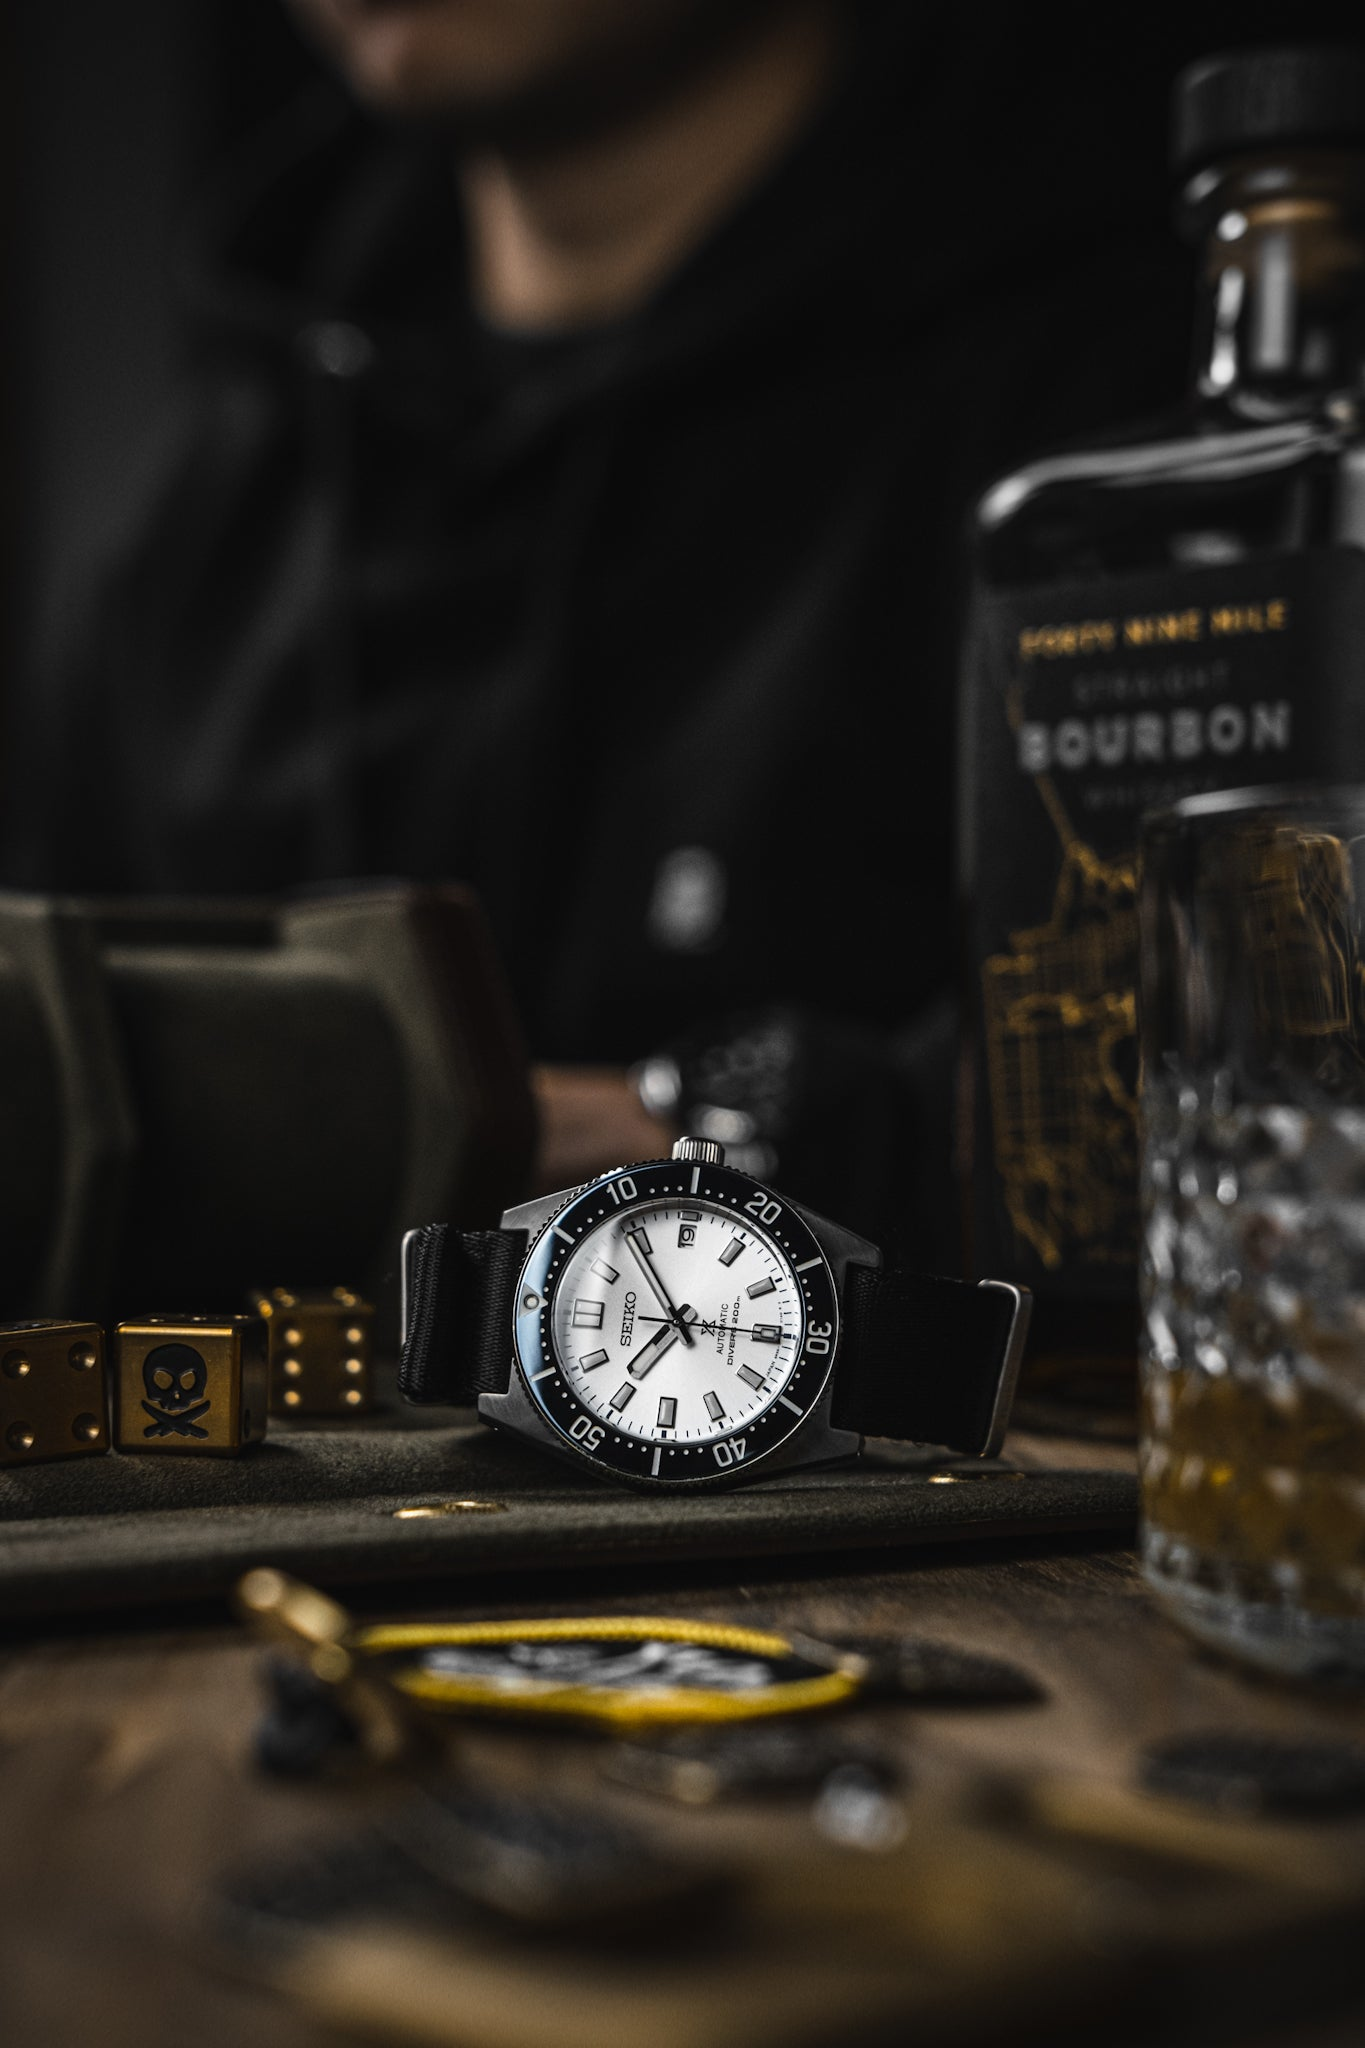 4 ways to add a vignette effect to your watch photos